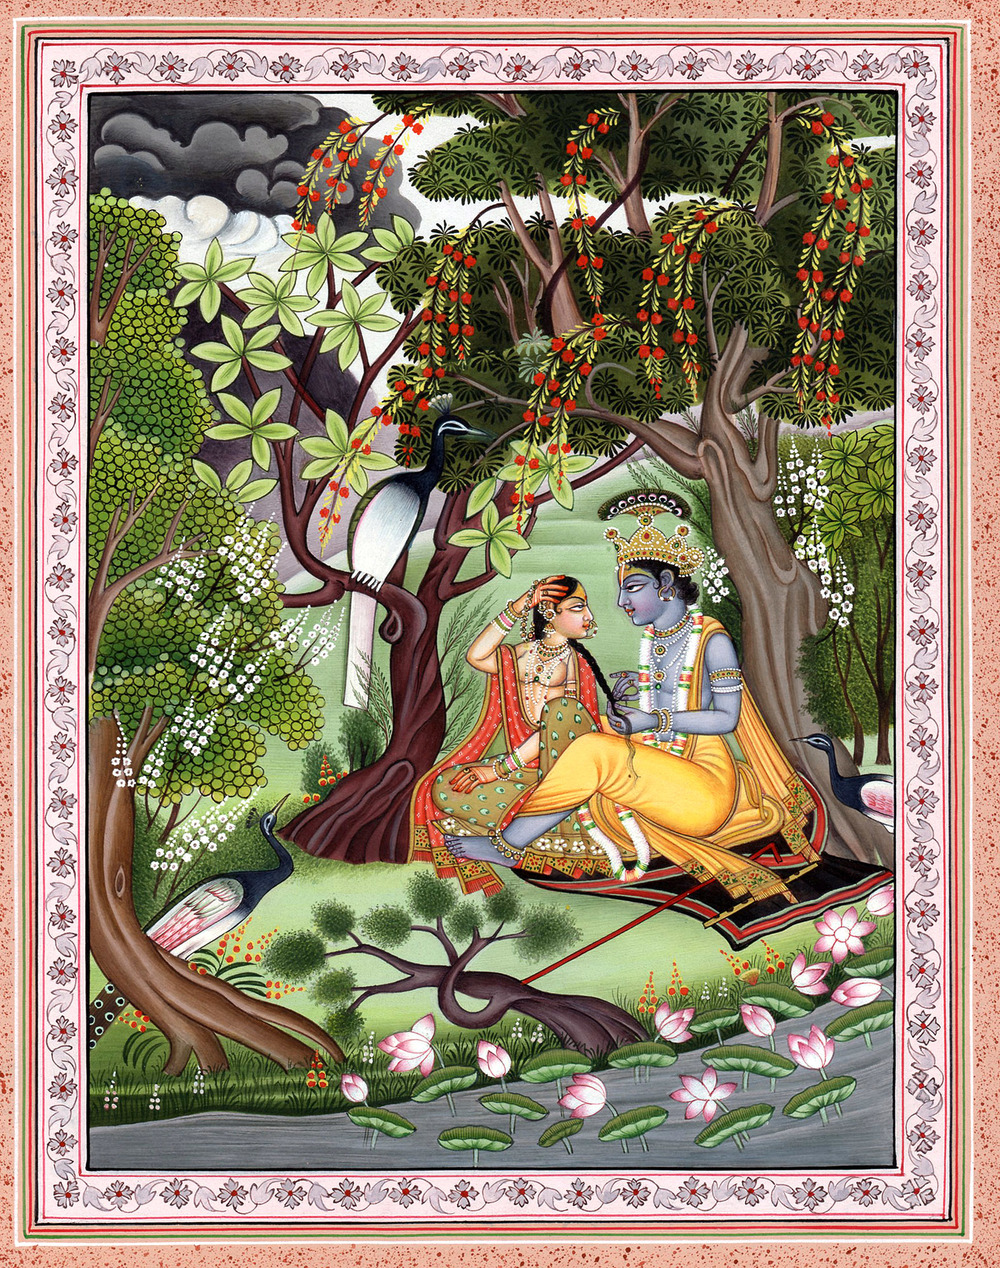 Krishna in the garden